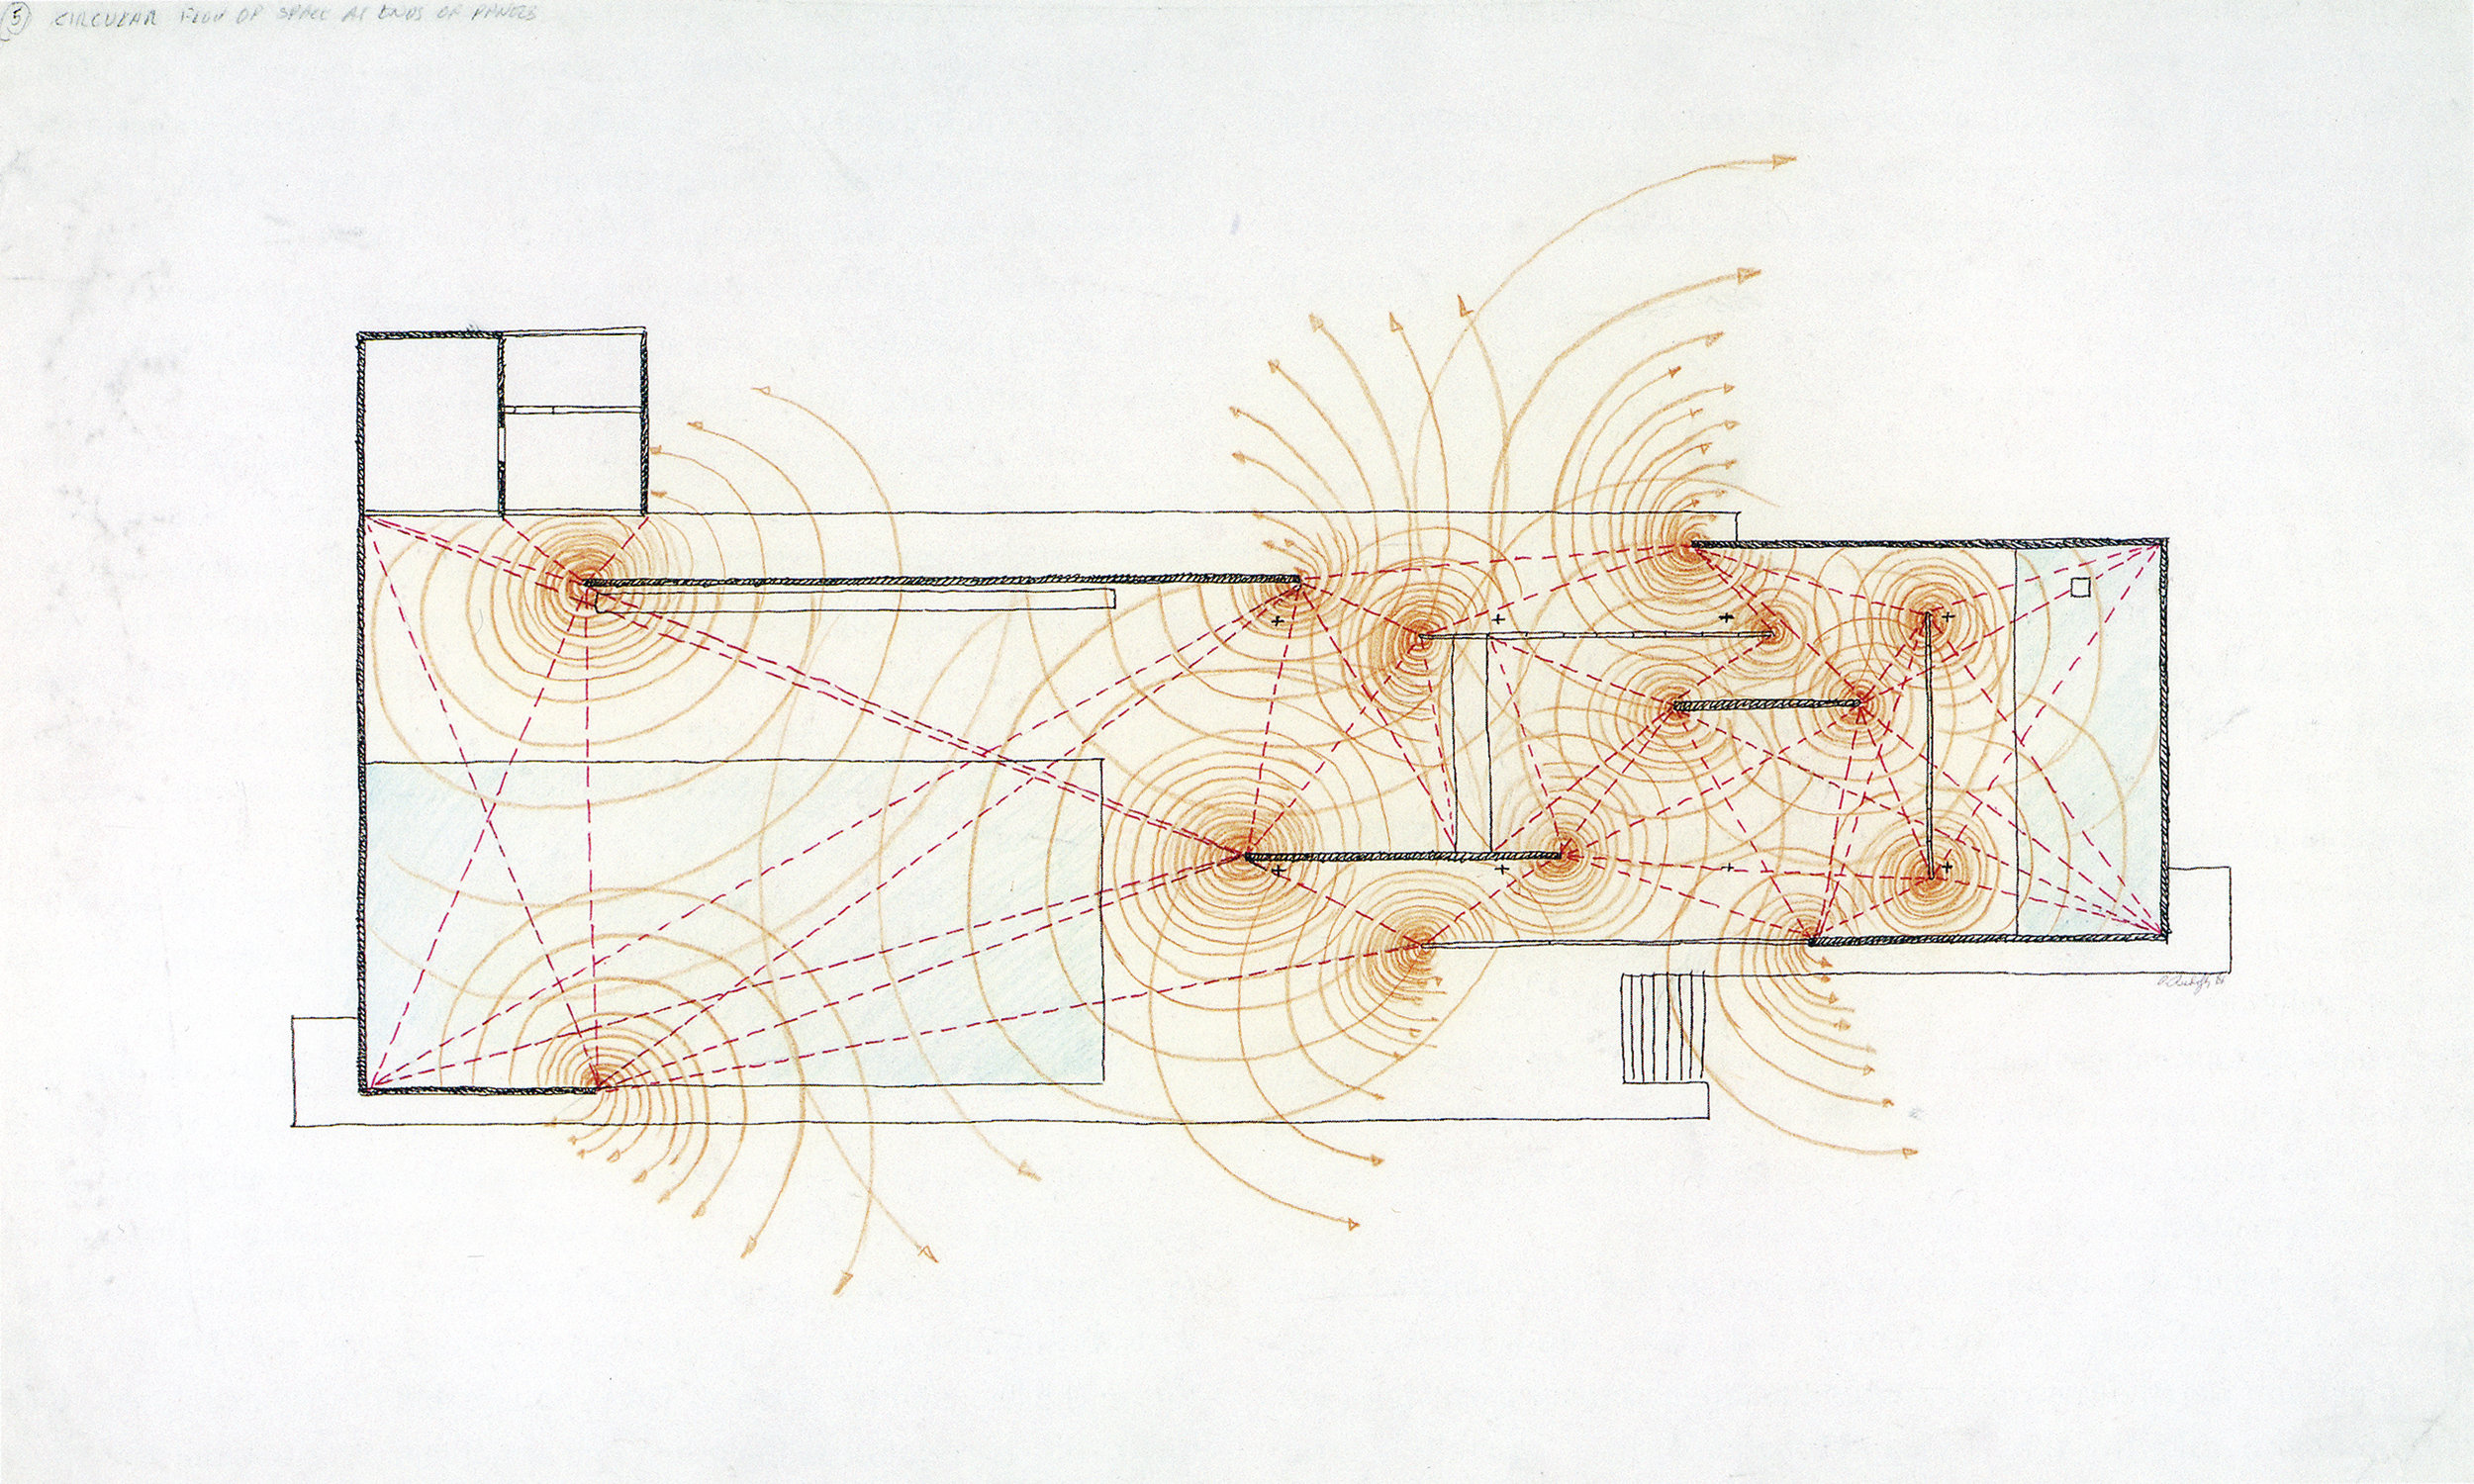 'Circular Flow Of Space At Ends Of Panels' - Paul Rudolph's graphic analysis of Mies's Barcelona Pavilion. Image from the Archives of the Paul Rudolph Heritage Foundation.